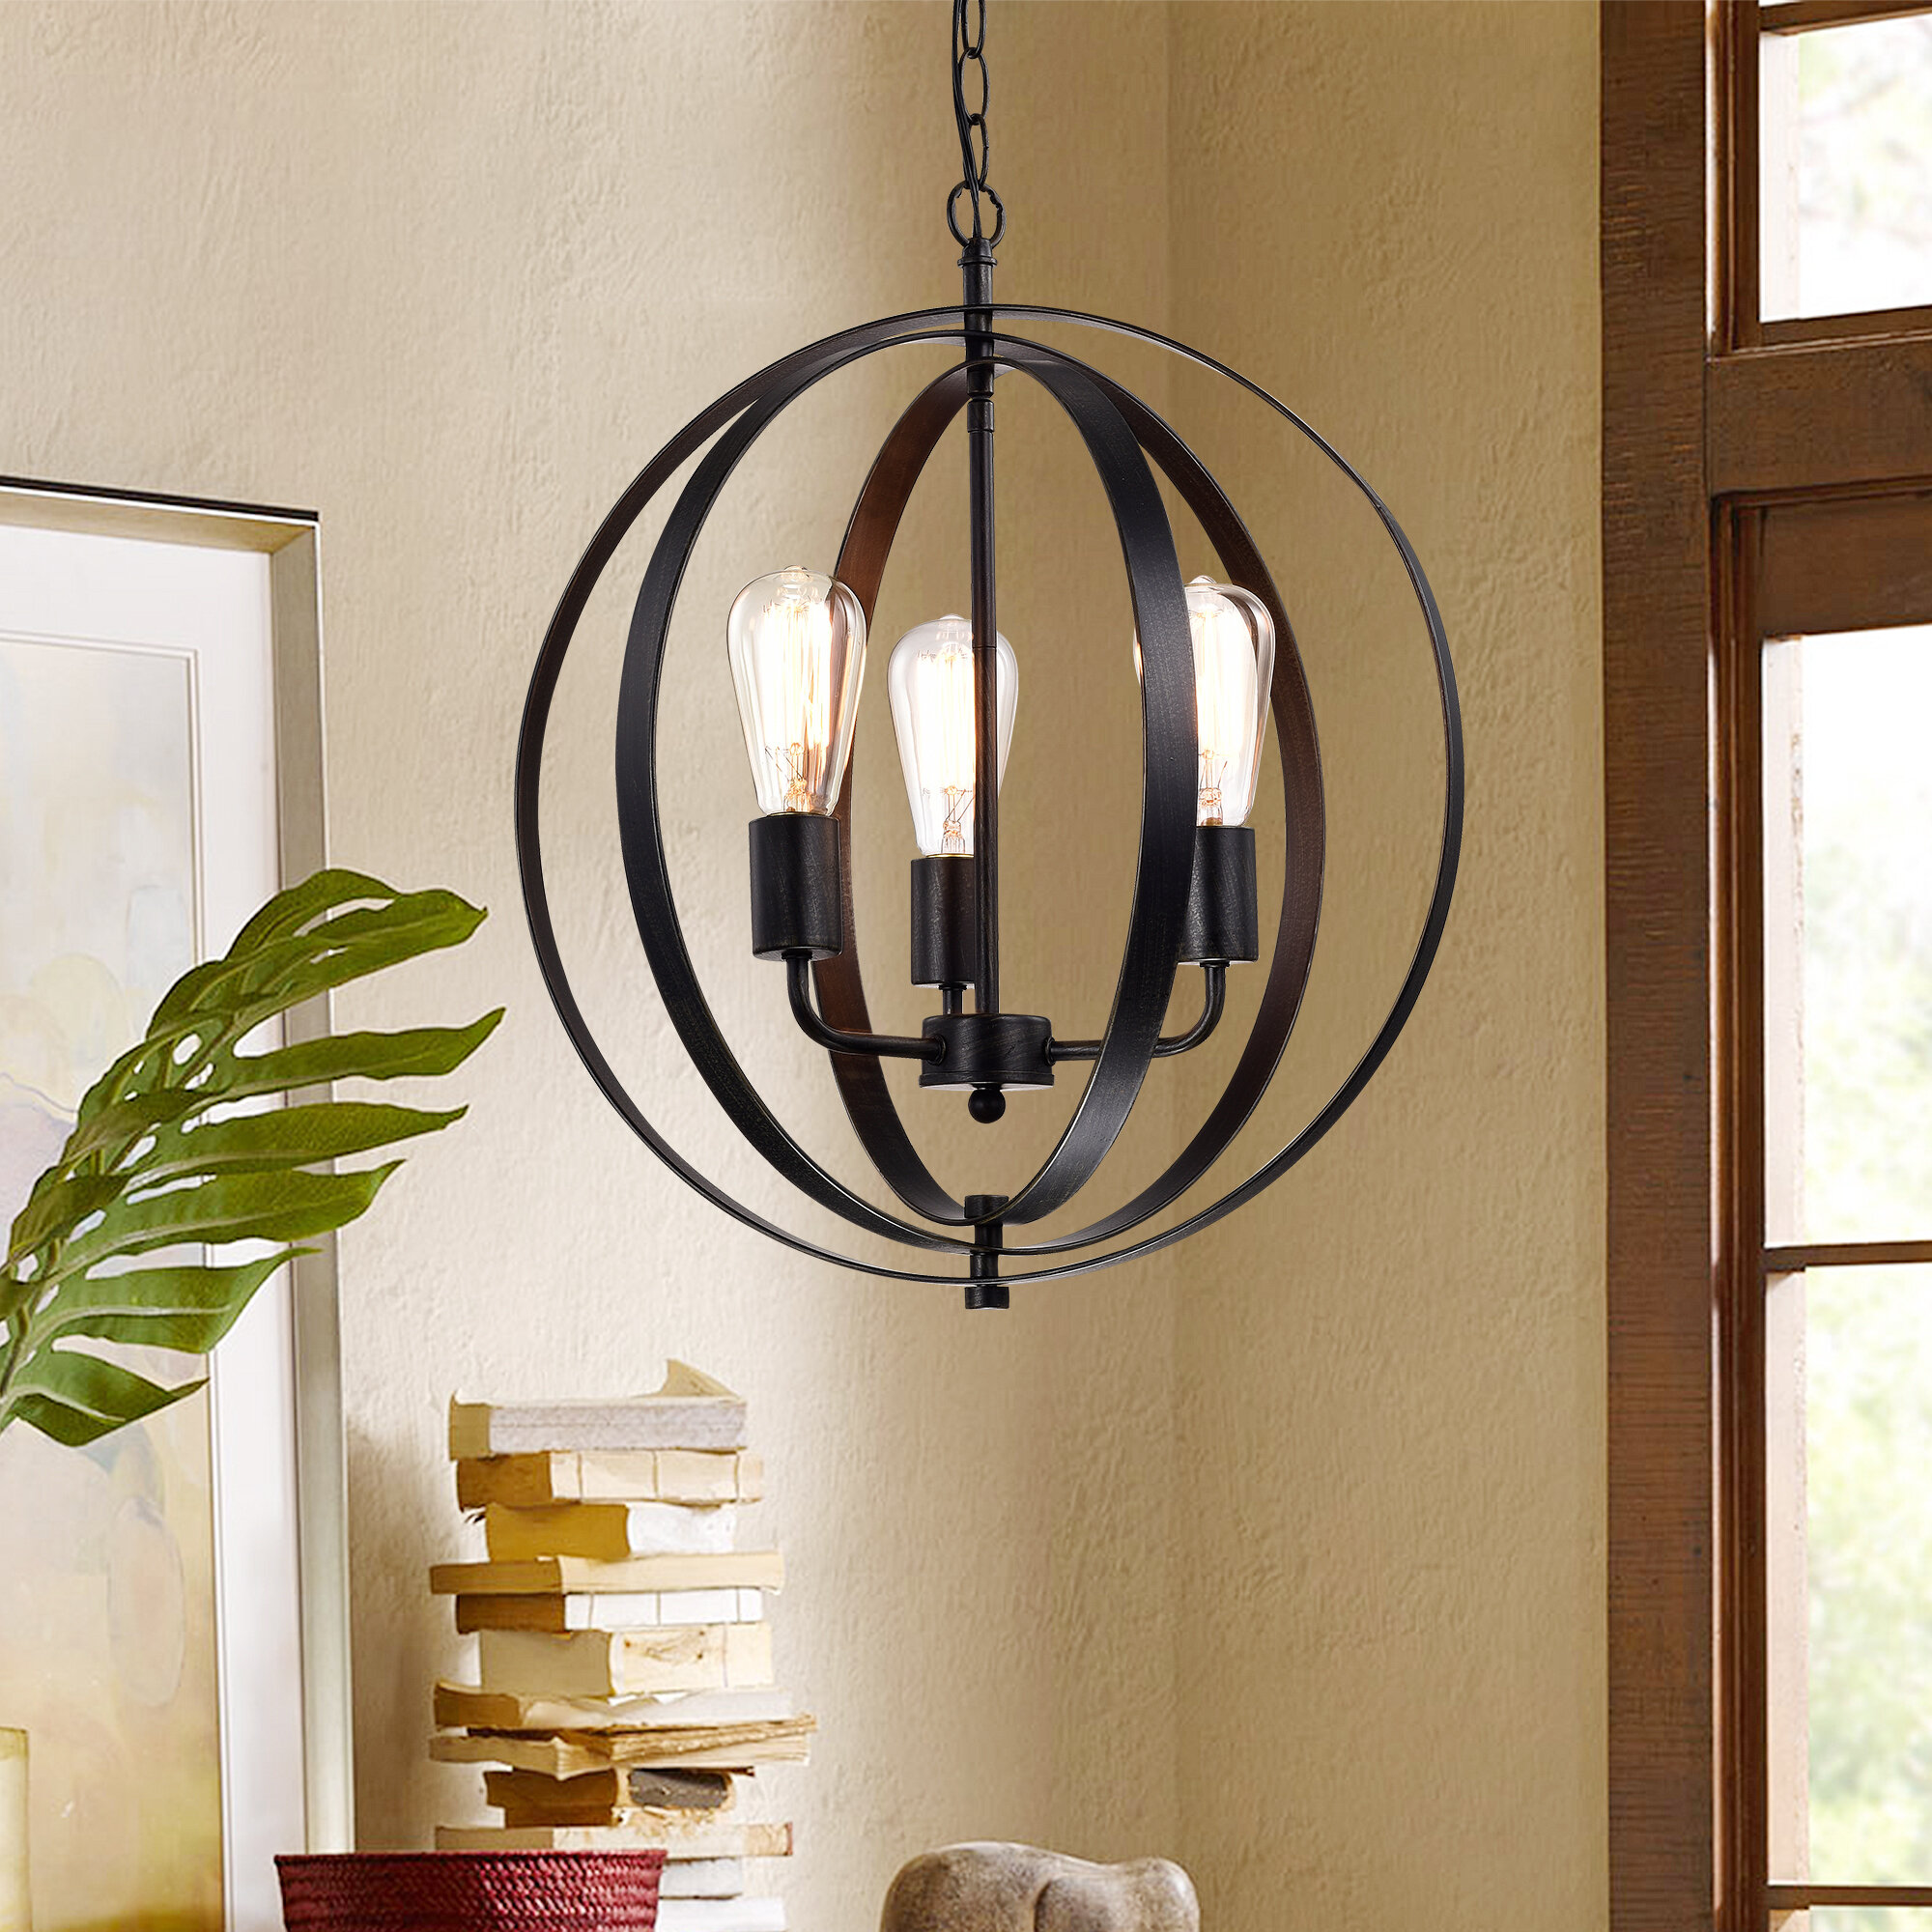 Get Awesome Industrial Dining Room Light That Wow